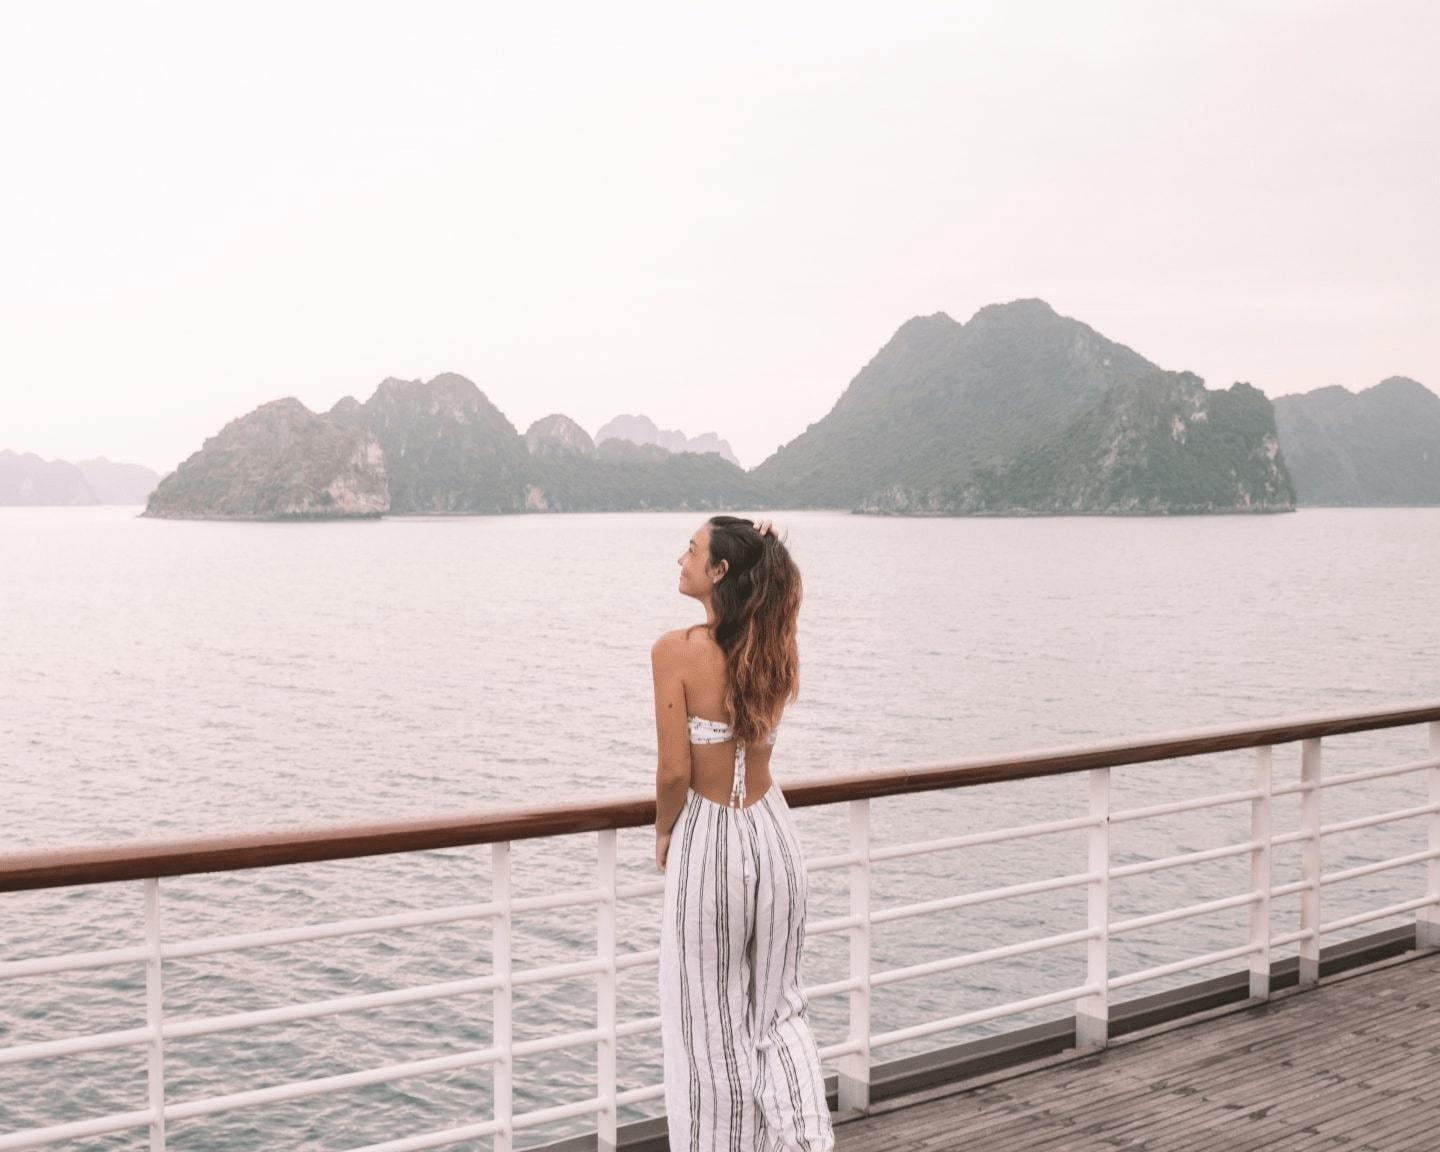 When to book Halong Bay Cruise? Right Now or Wait for Flash Sale?